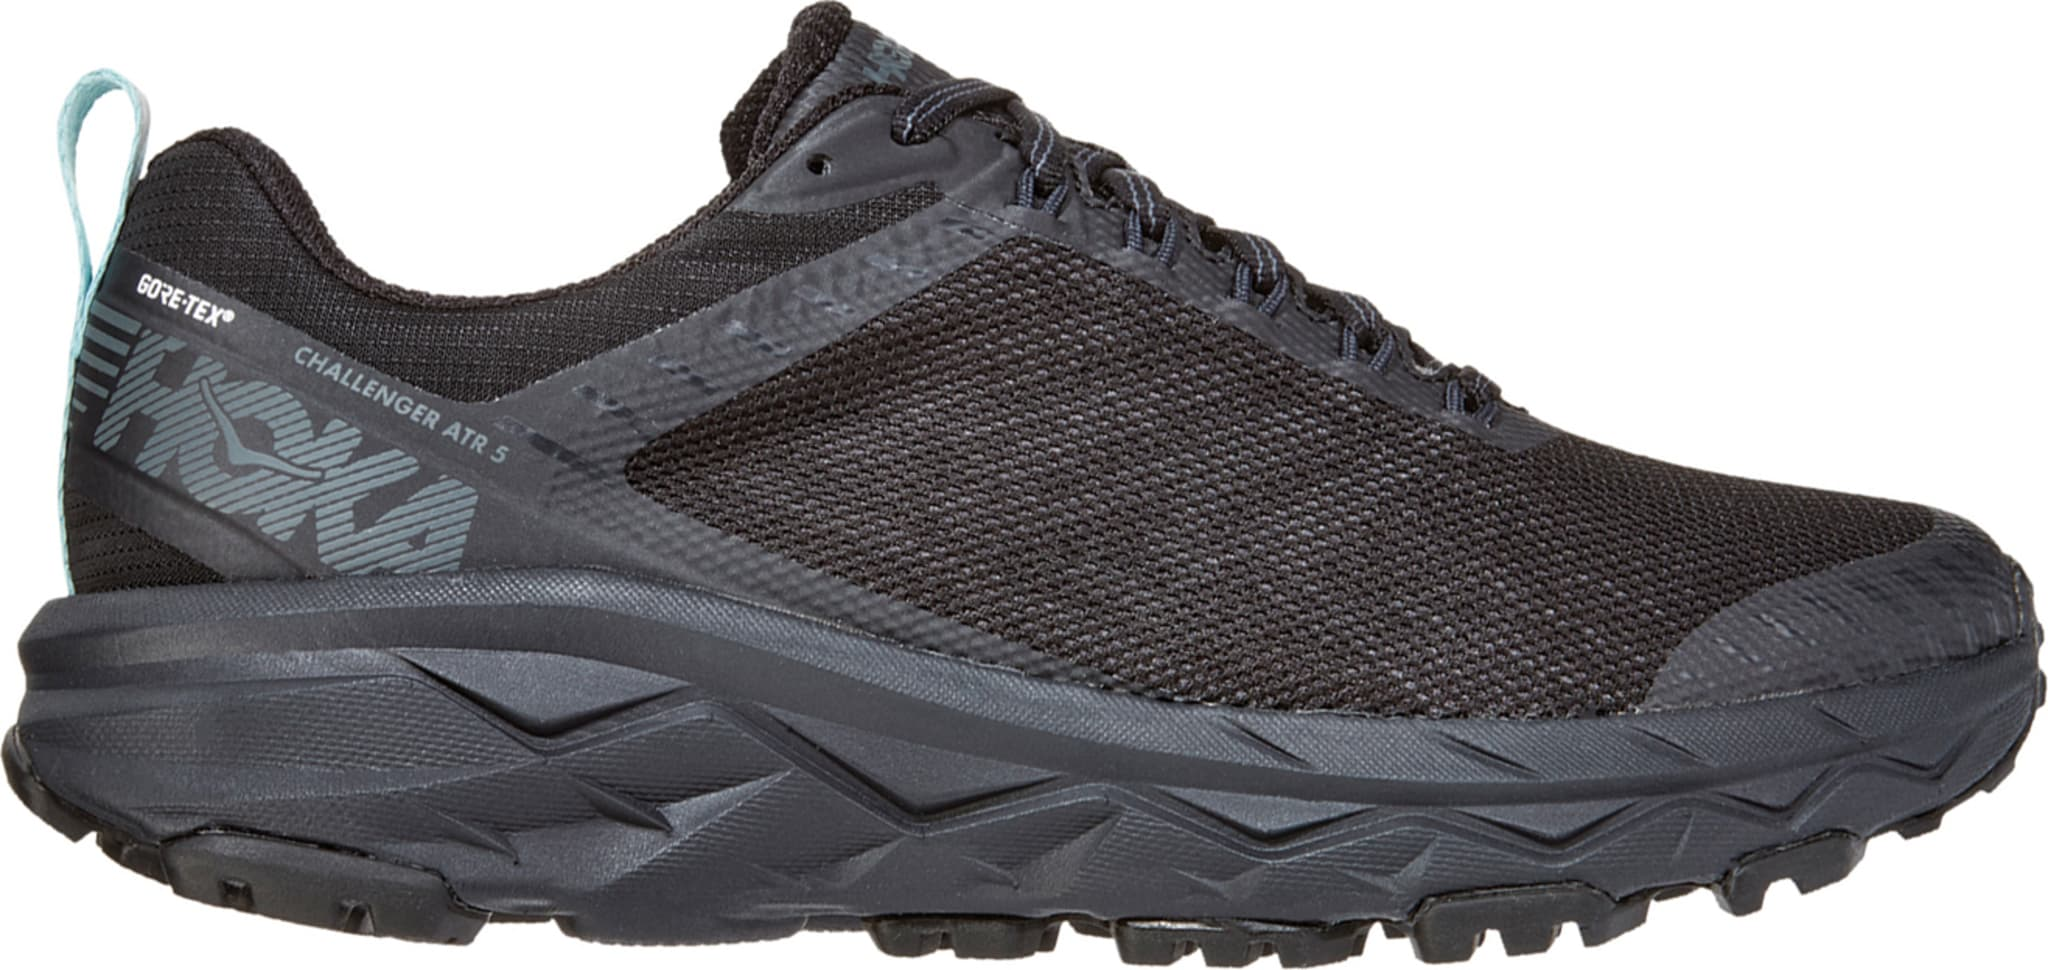 Hoka clifton 5 dame